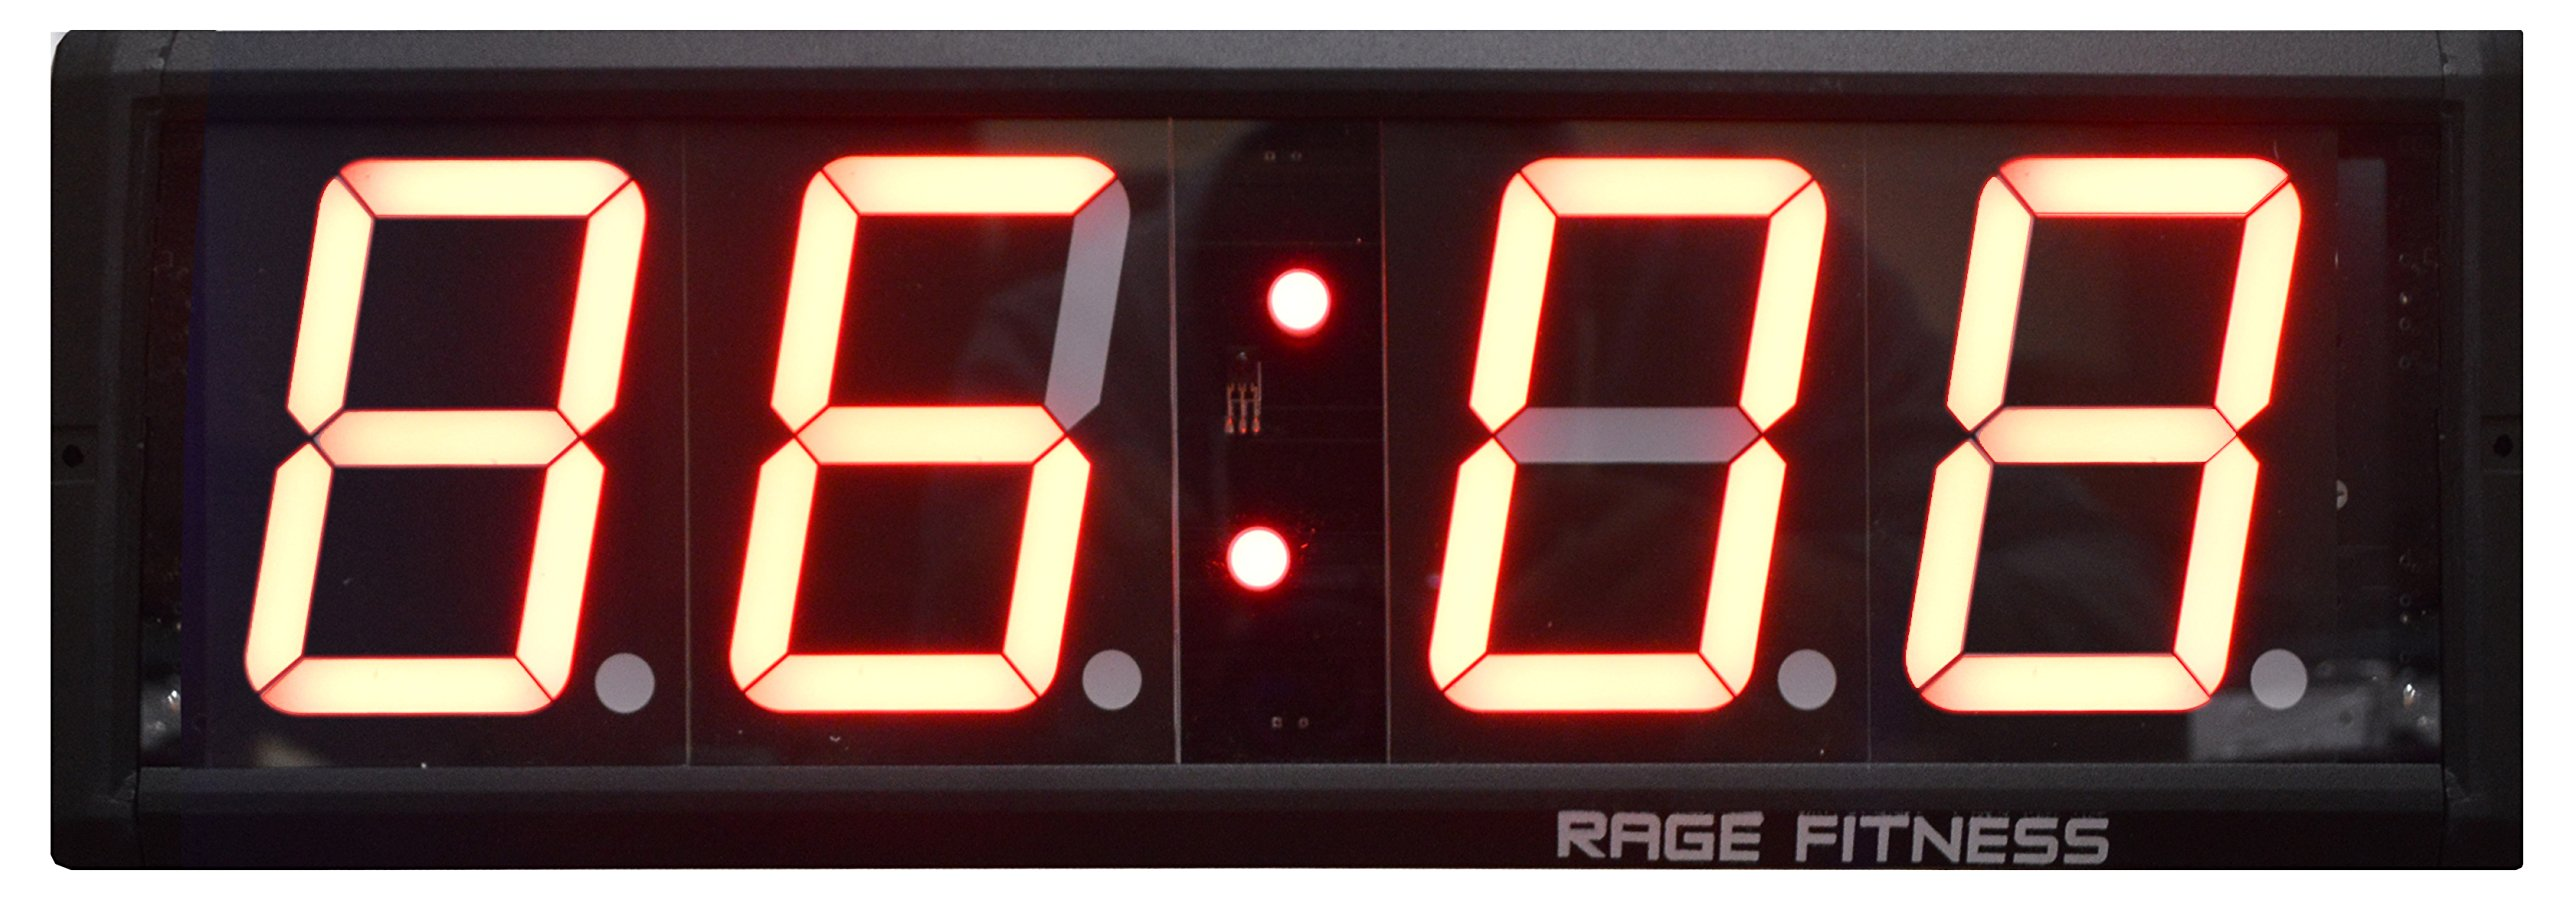 RAGE Fitness 4 Digit Digital Timer Huge 6.5'' x 20'' Display Clock